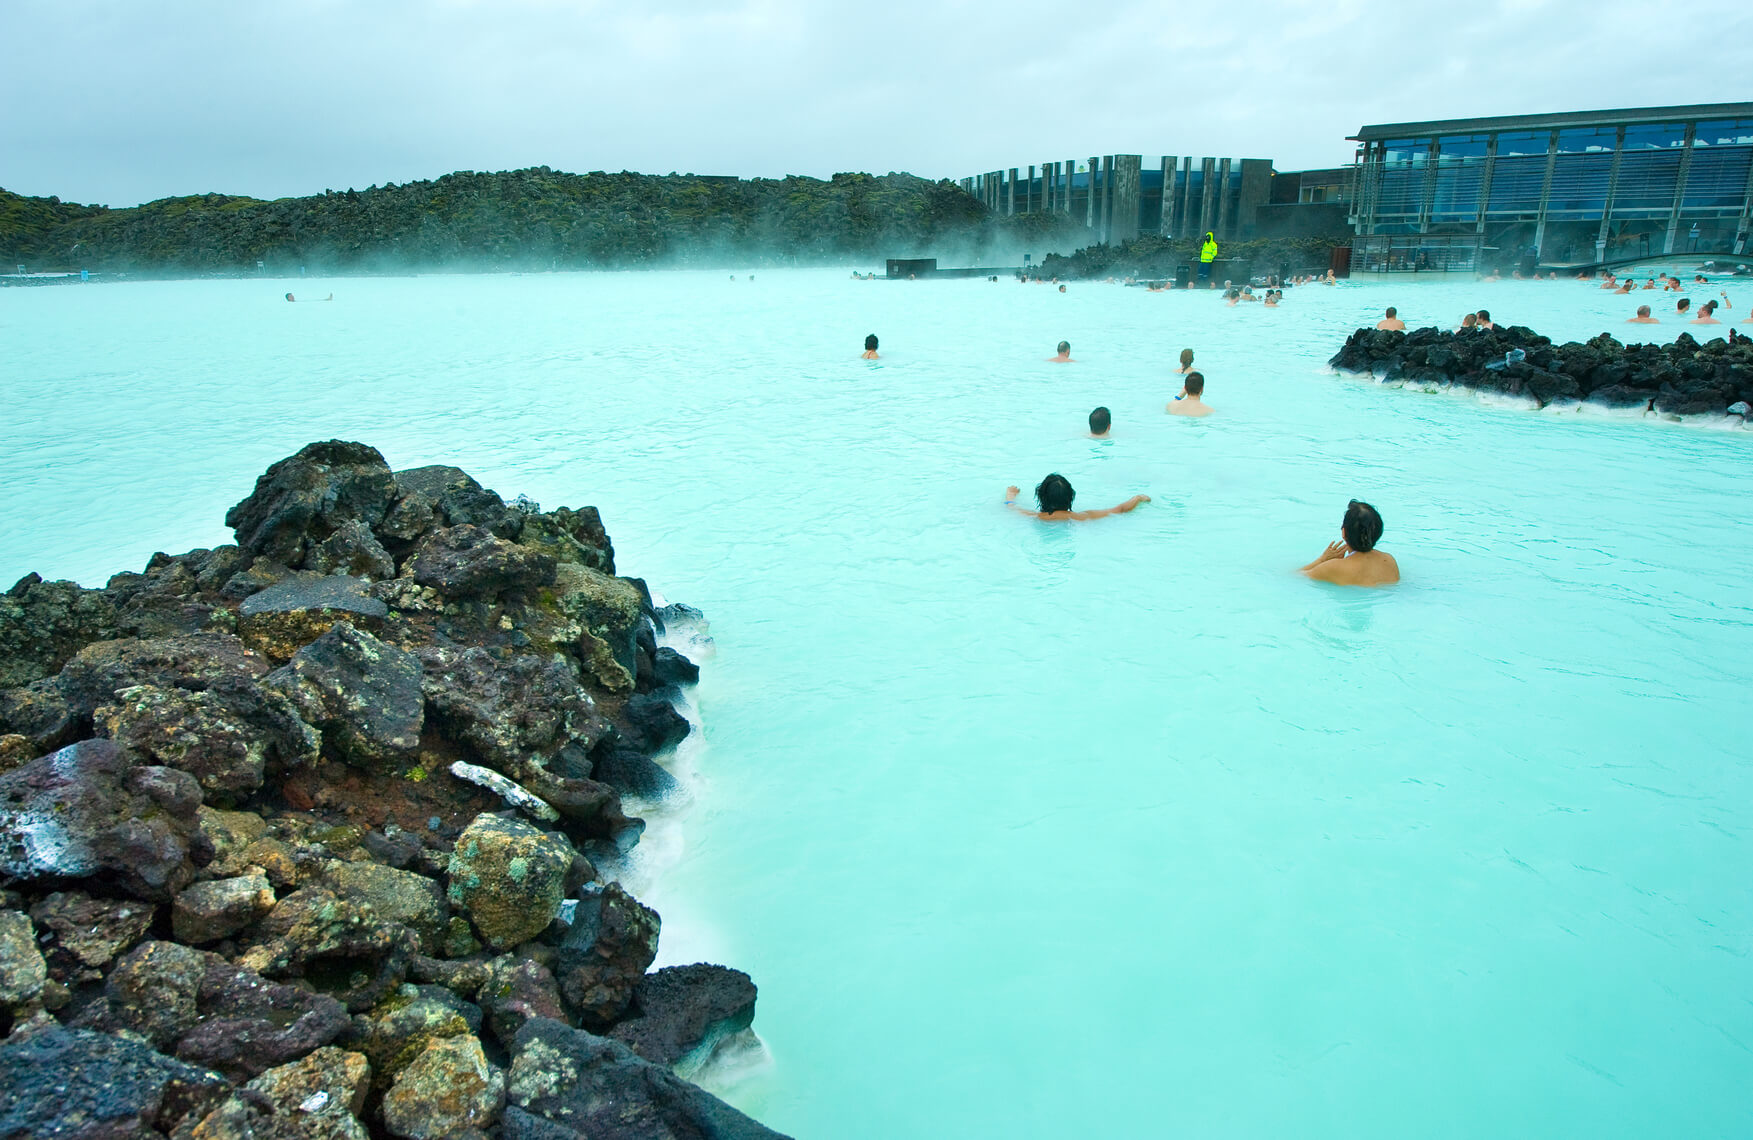 Non-stop from London, UK to Reykjavik, Iceland for only £17 roundtrip (Wizz members price) (Dec-Jan dates)